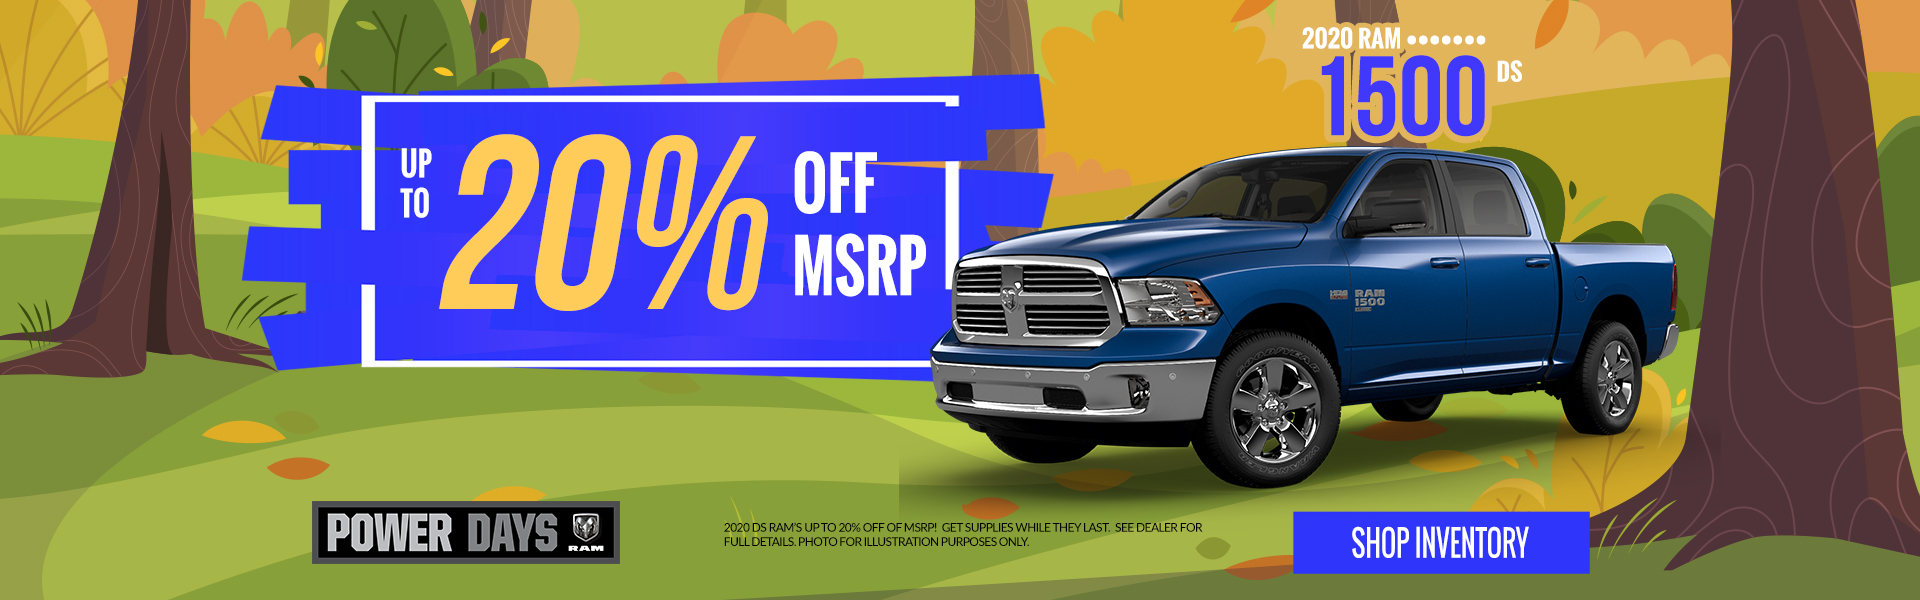 20 Ram 1500 - Lease for $349 per month